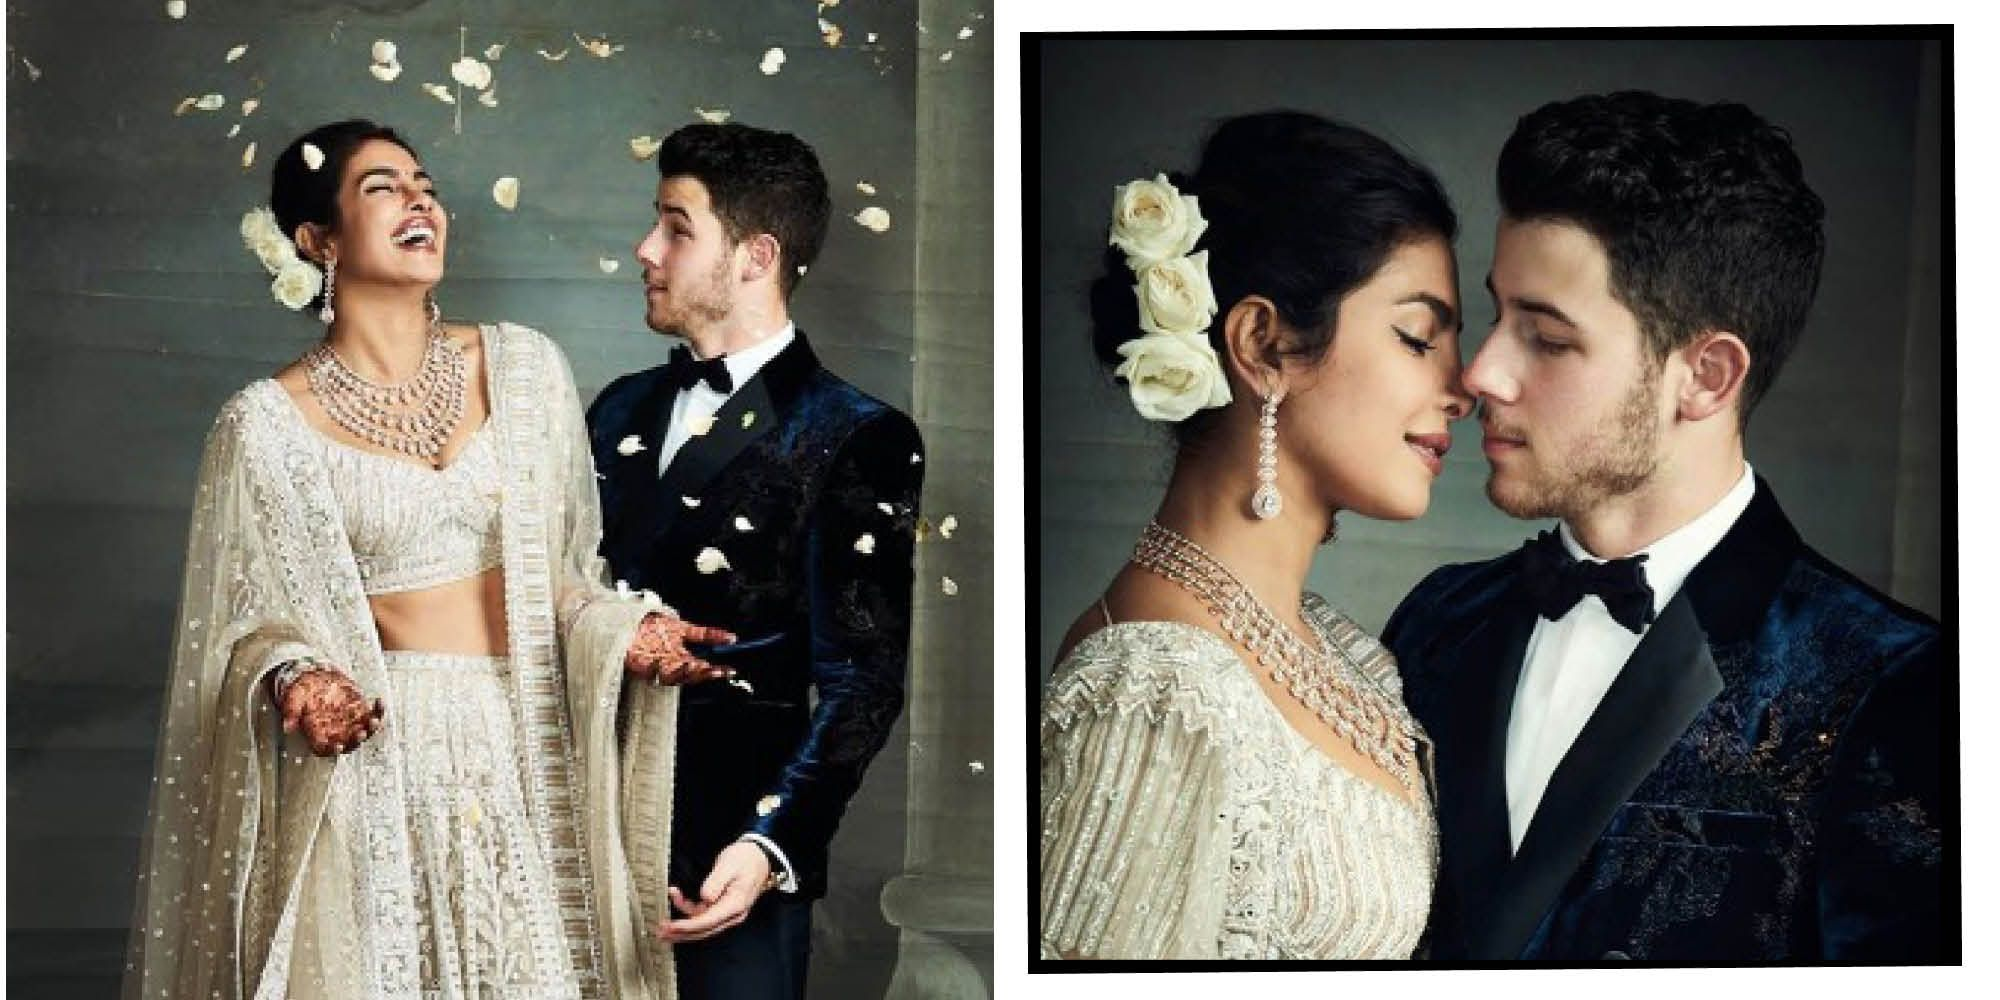 The Pictures From Priyanka Chopra And Nick Jonas' Wedding Reception Have Been Released